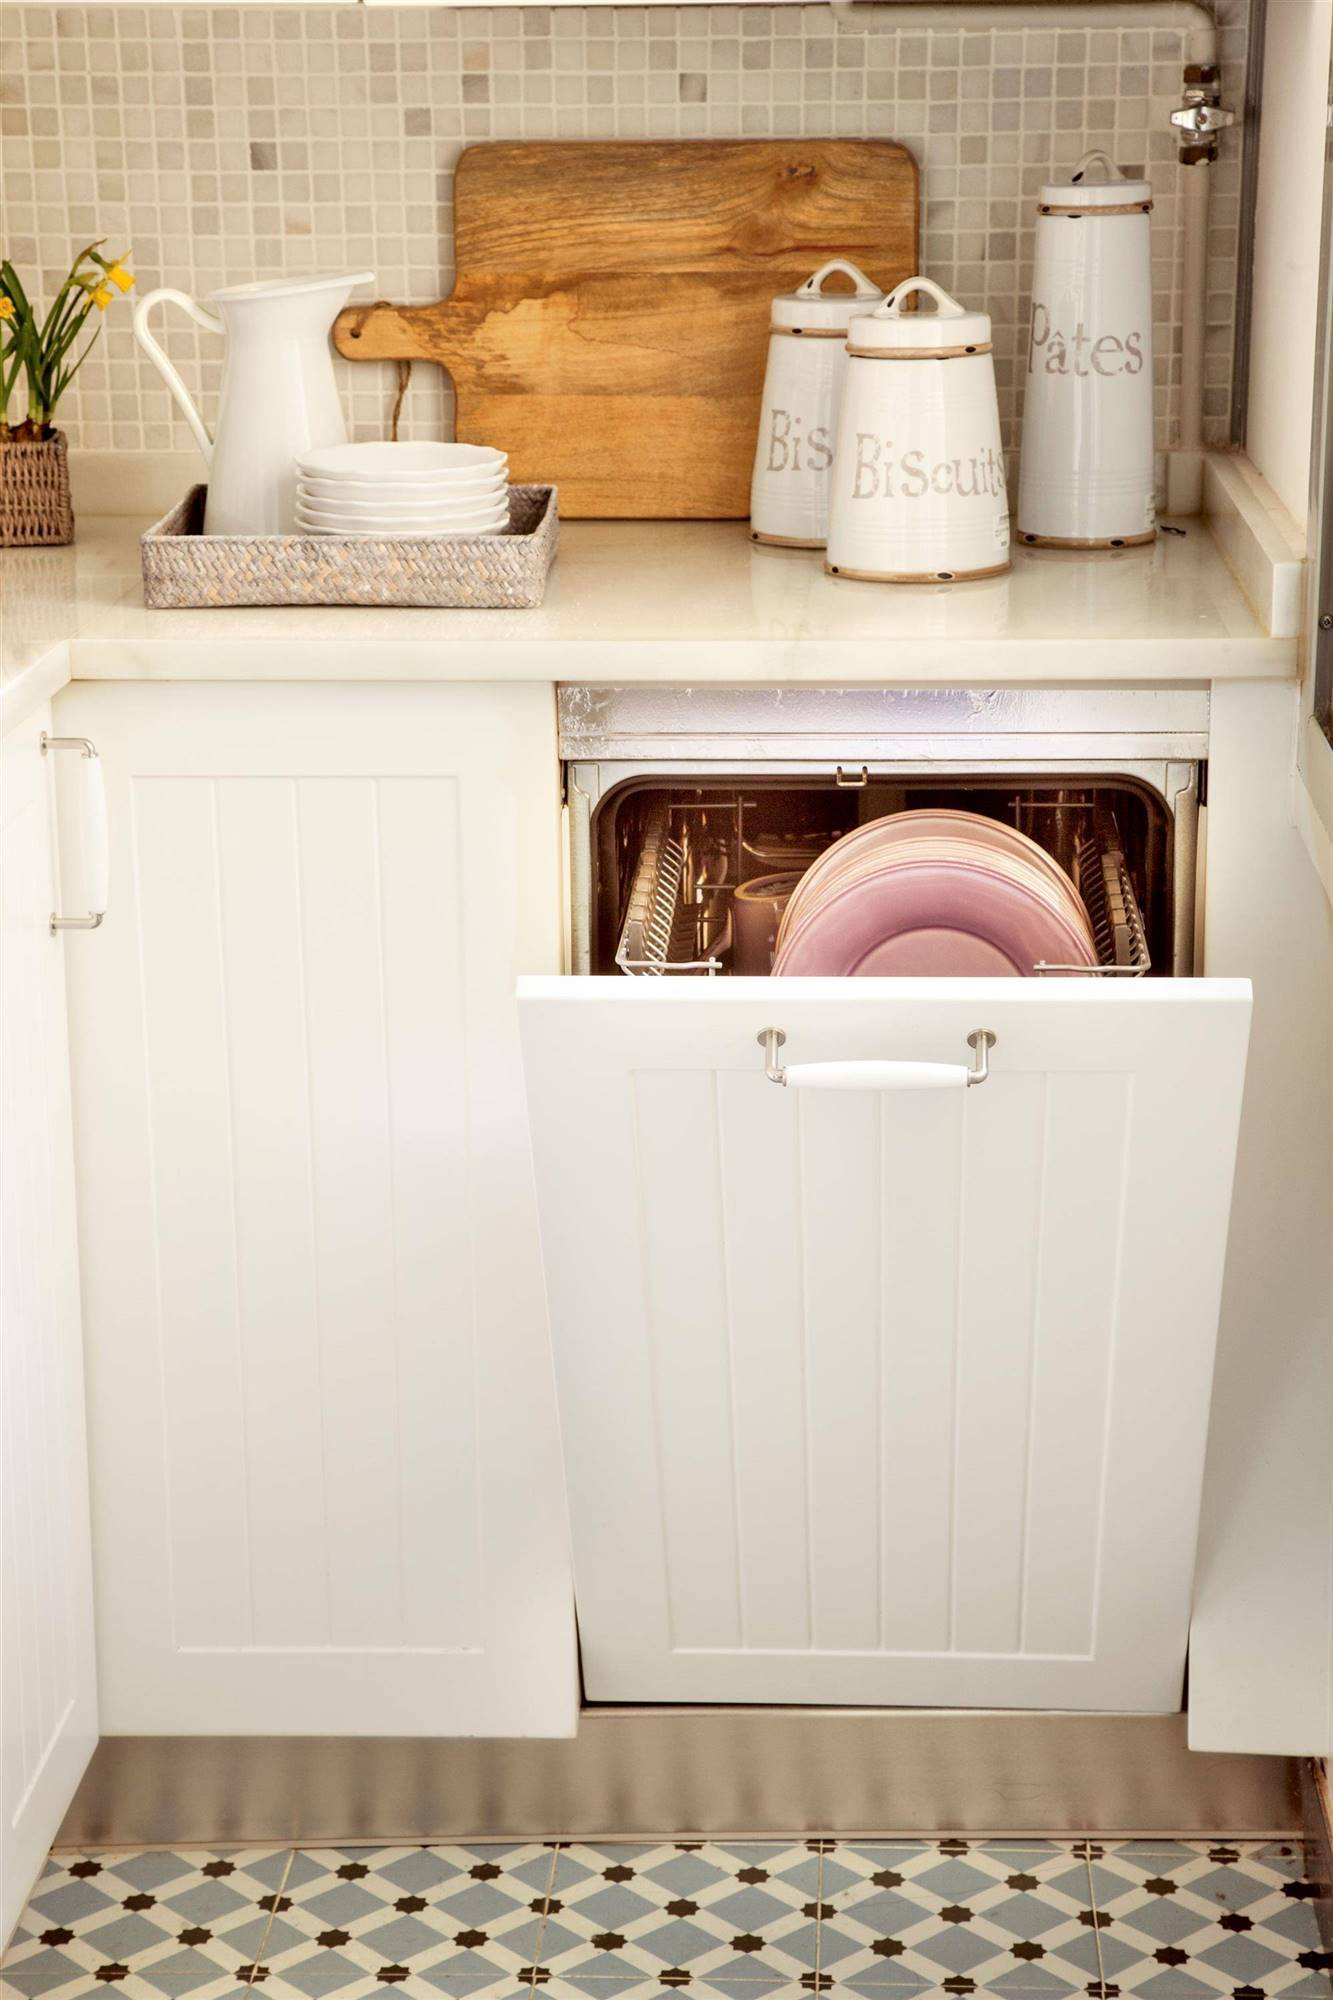 50 refrigerator cleaning tricks.  19. How do you put the dishes in the dishwasher?